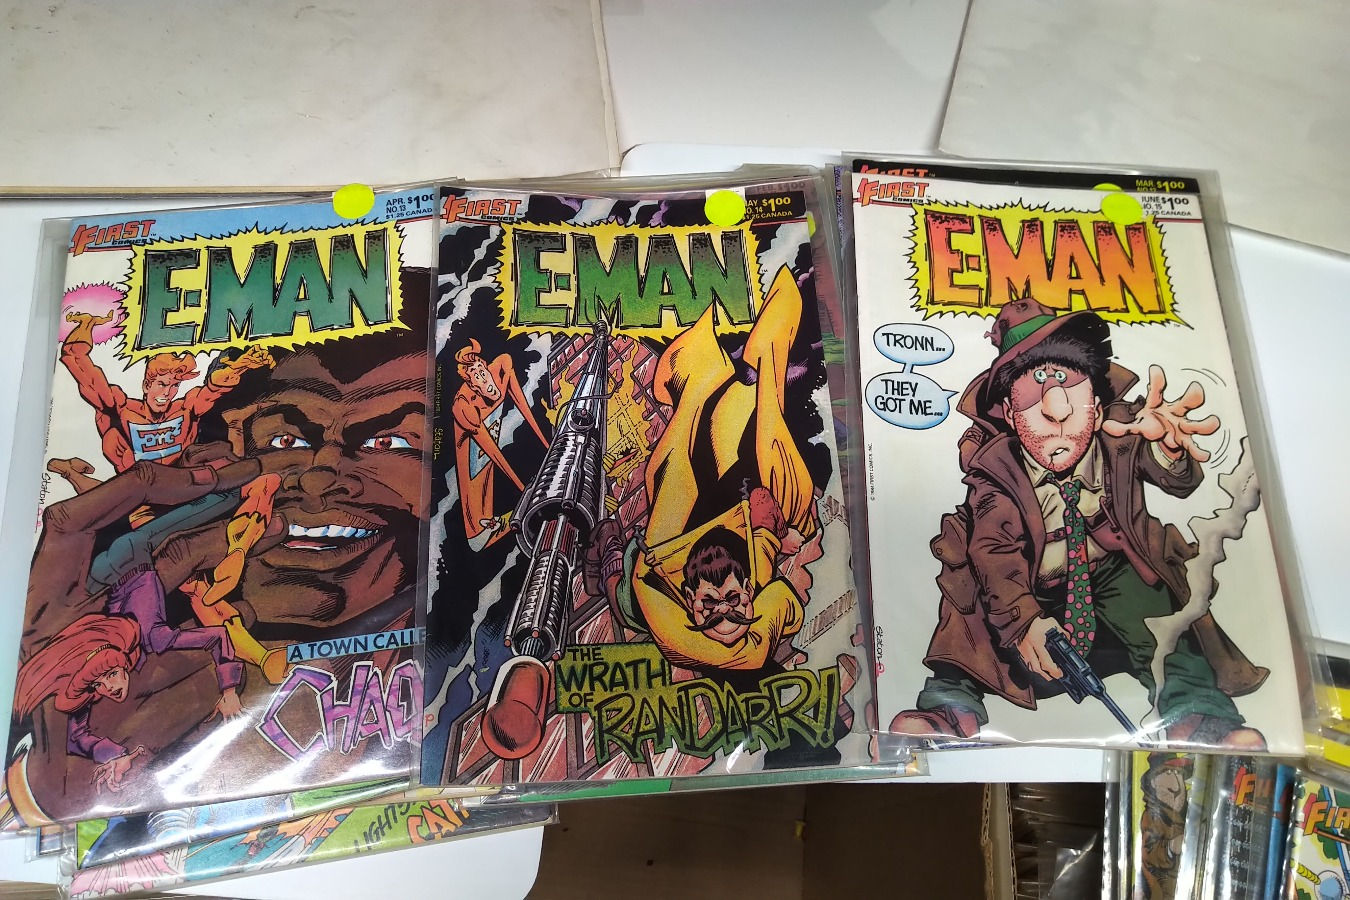 E-man Comic Books issue #1 to 25